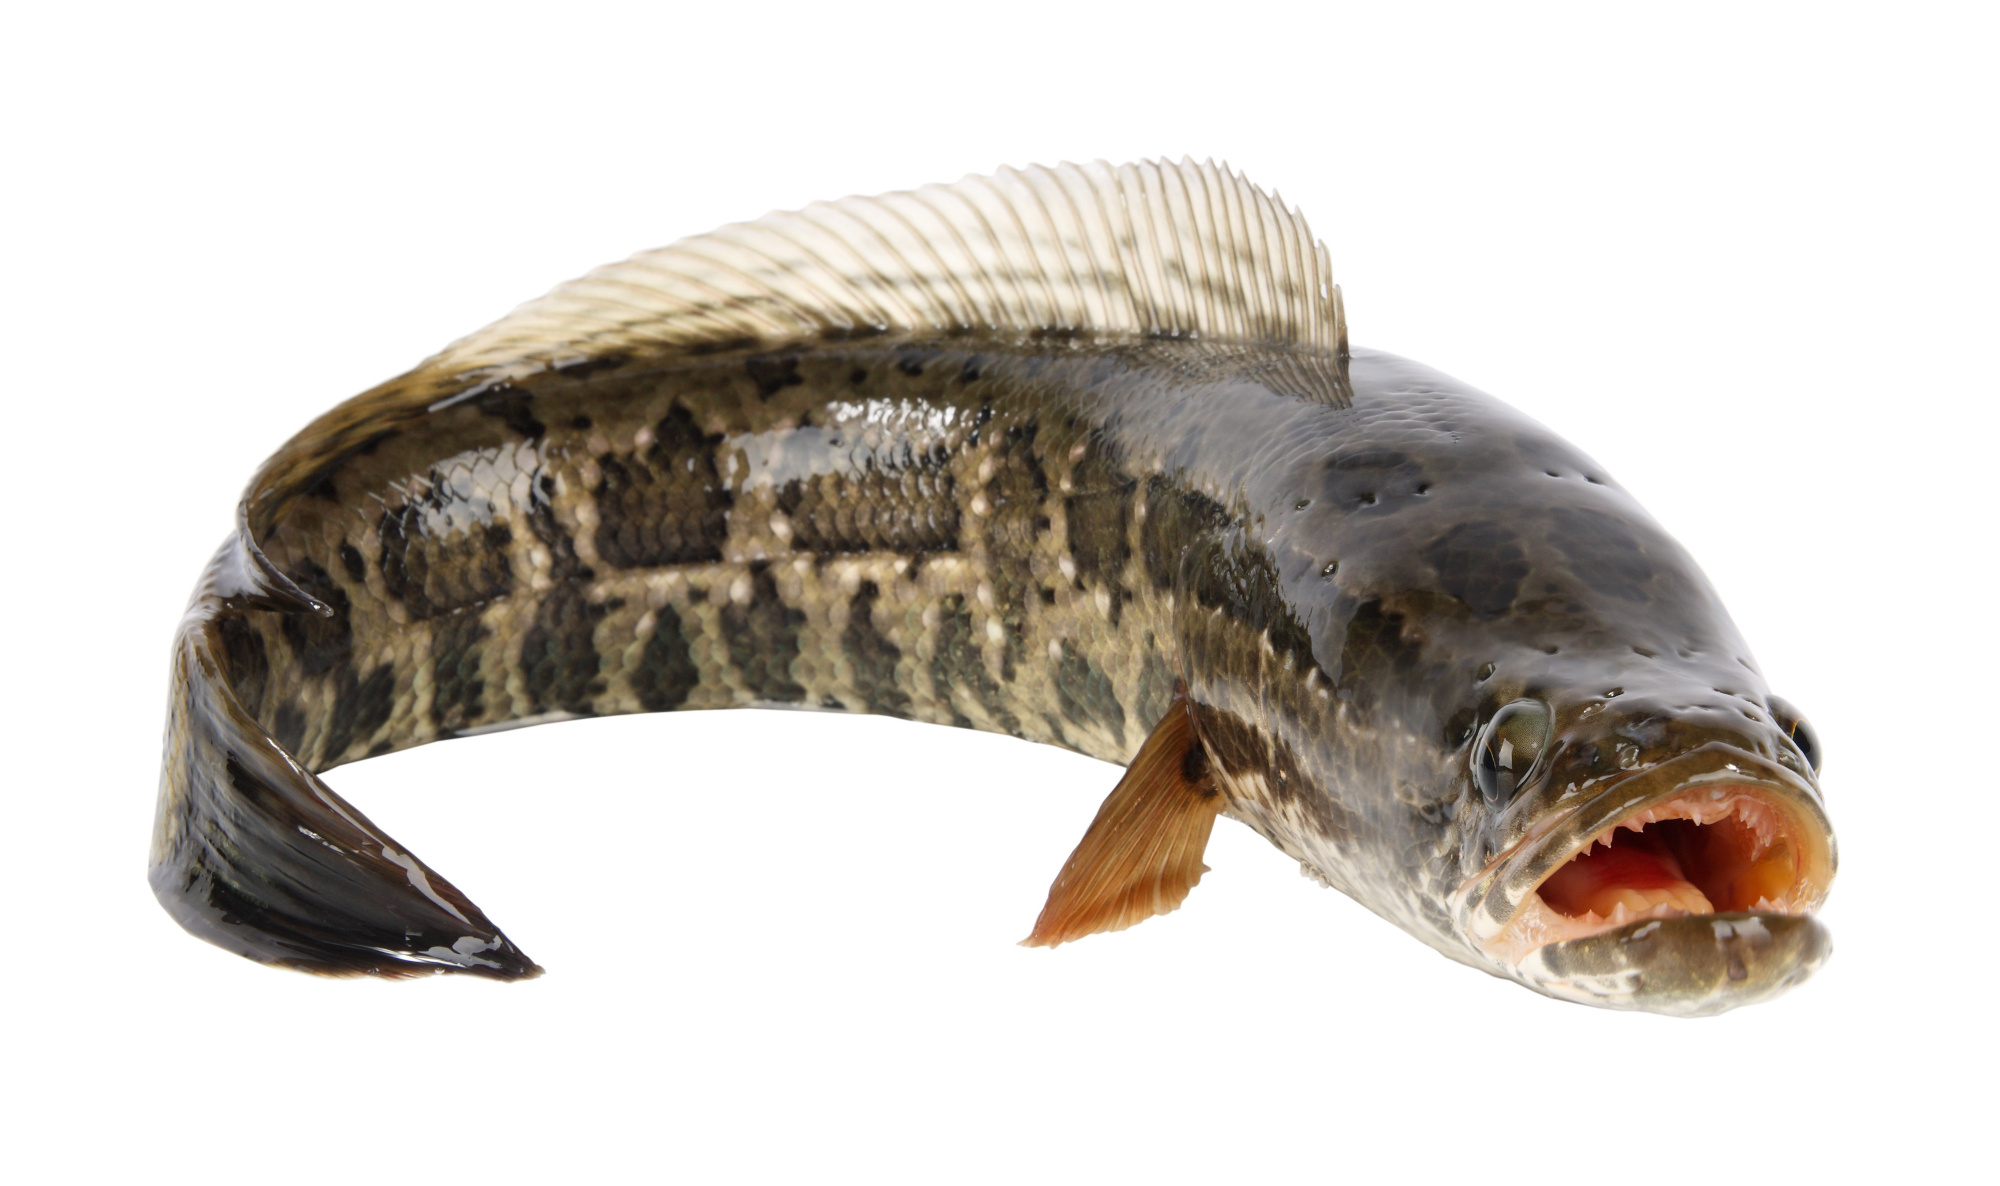 Snakehead on land